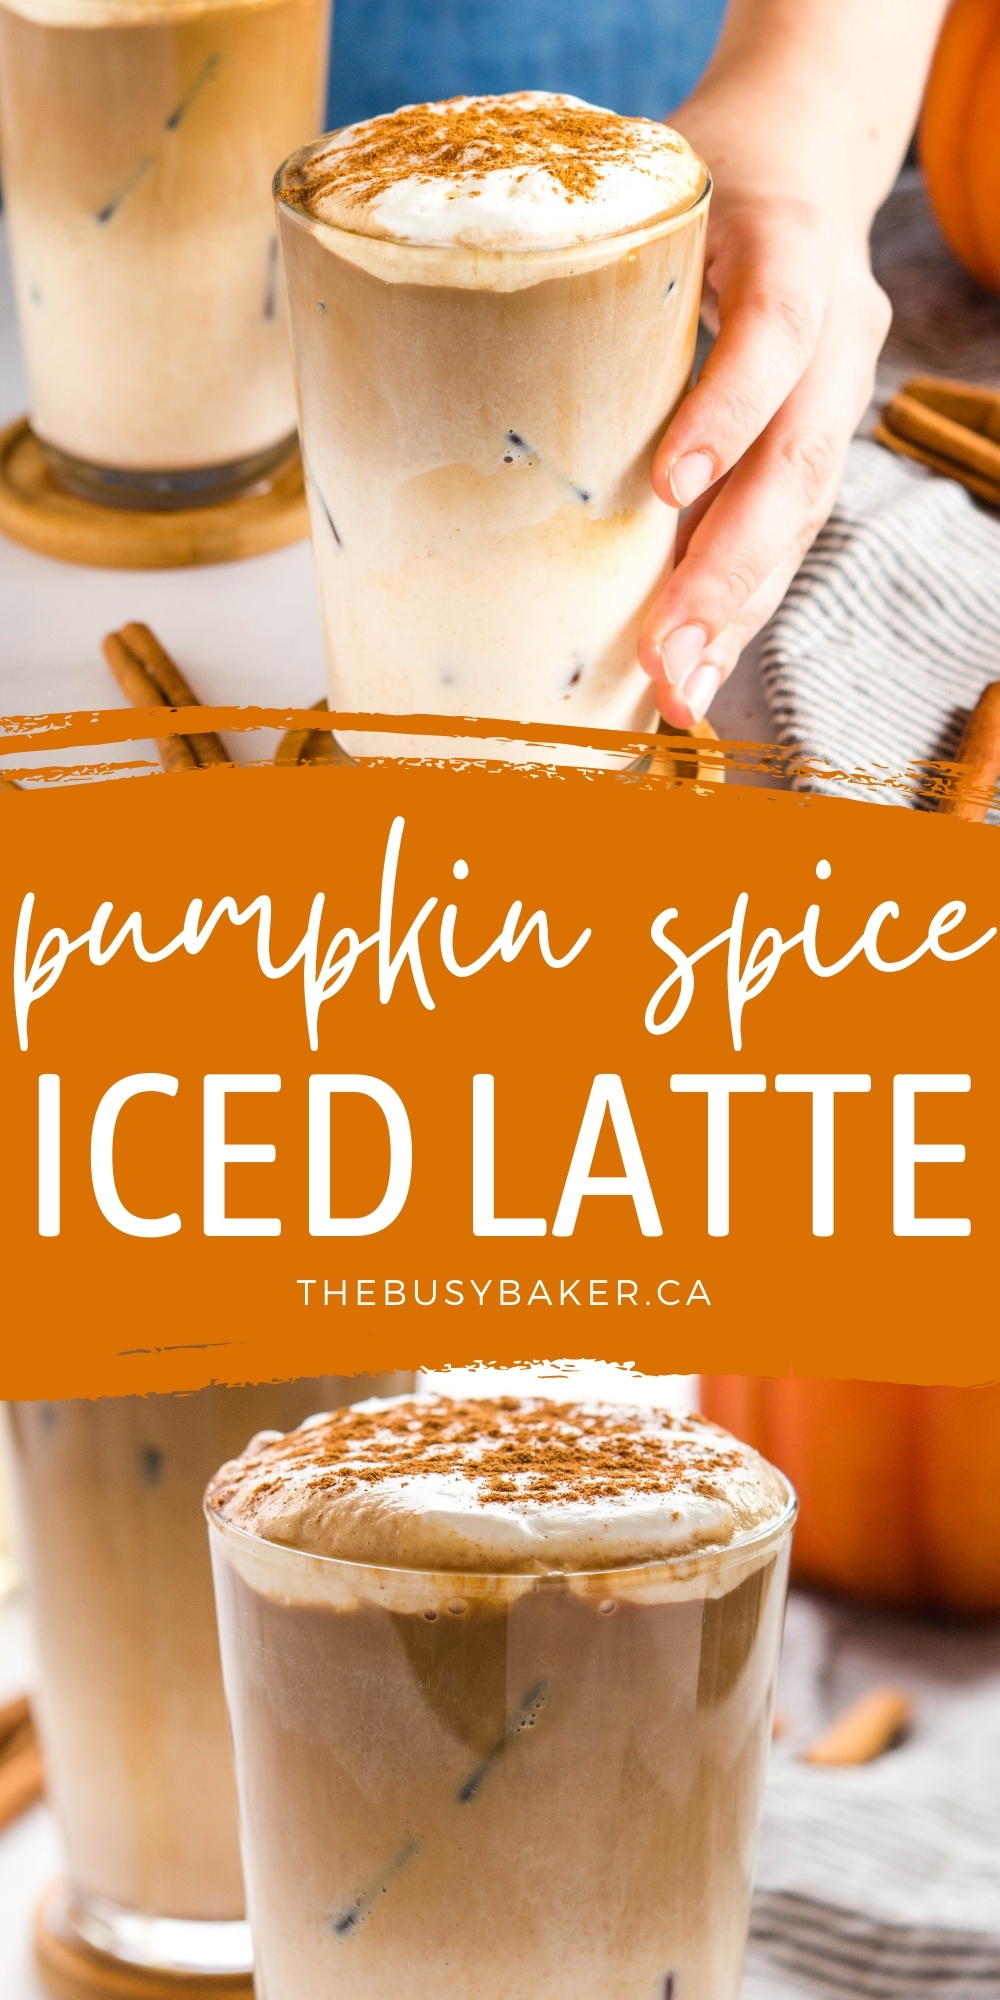 This Pumpkin Spice Iced Latteis the perfect pumpkin spice iced coffee - Simple espresso, an easy-to-make syrup to sweeten, and pumpkin spice flavoured milk! Easy to make dairy-free and sugar-free! Recipe from thebusybaker.ca! #pumpkinspice #icedcoffee #icedlatte #starbucks #homemade via @busybakerblog